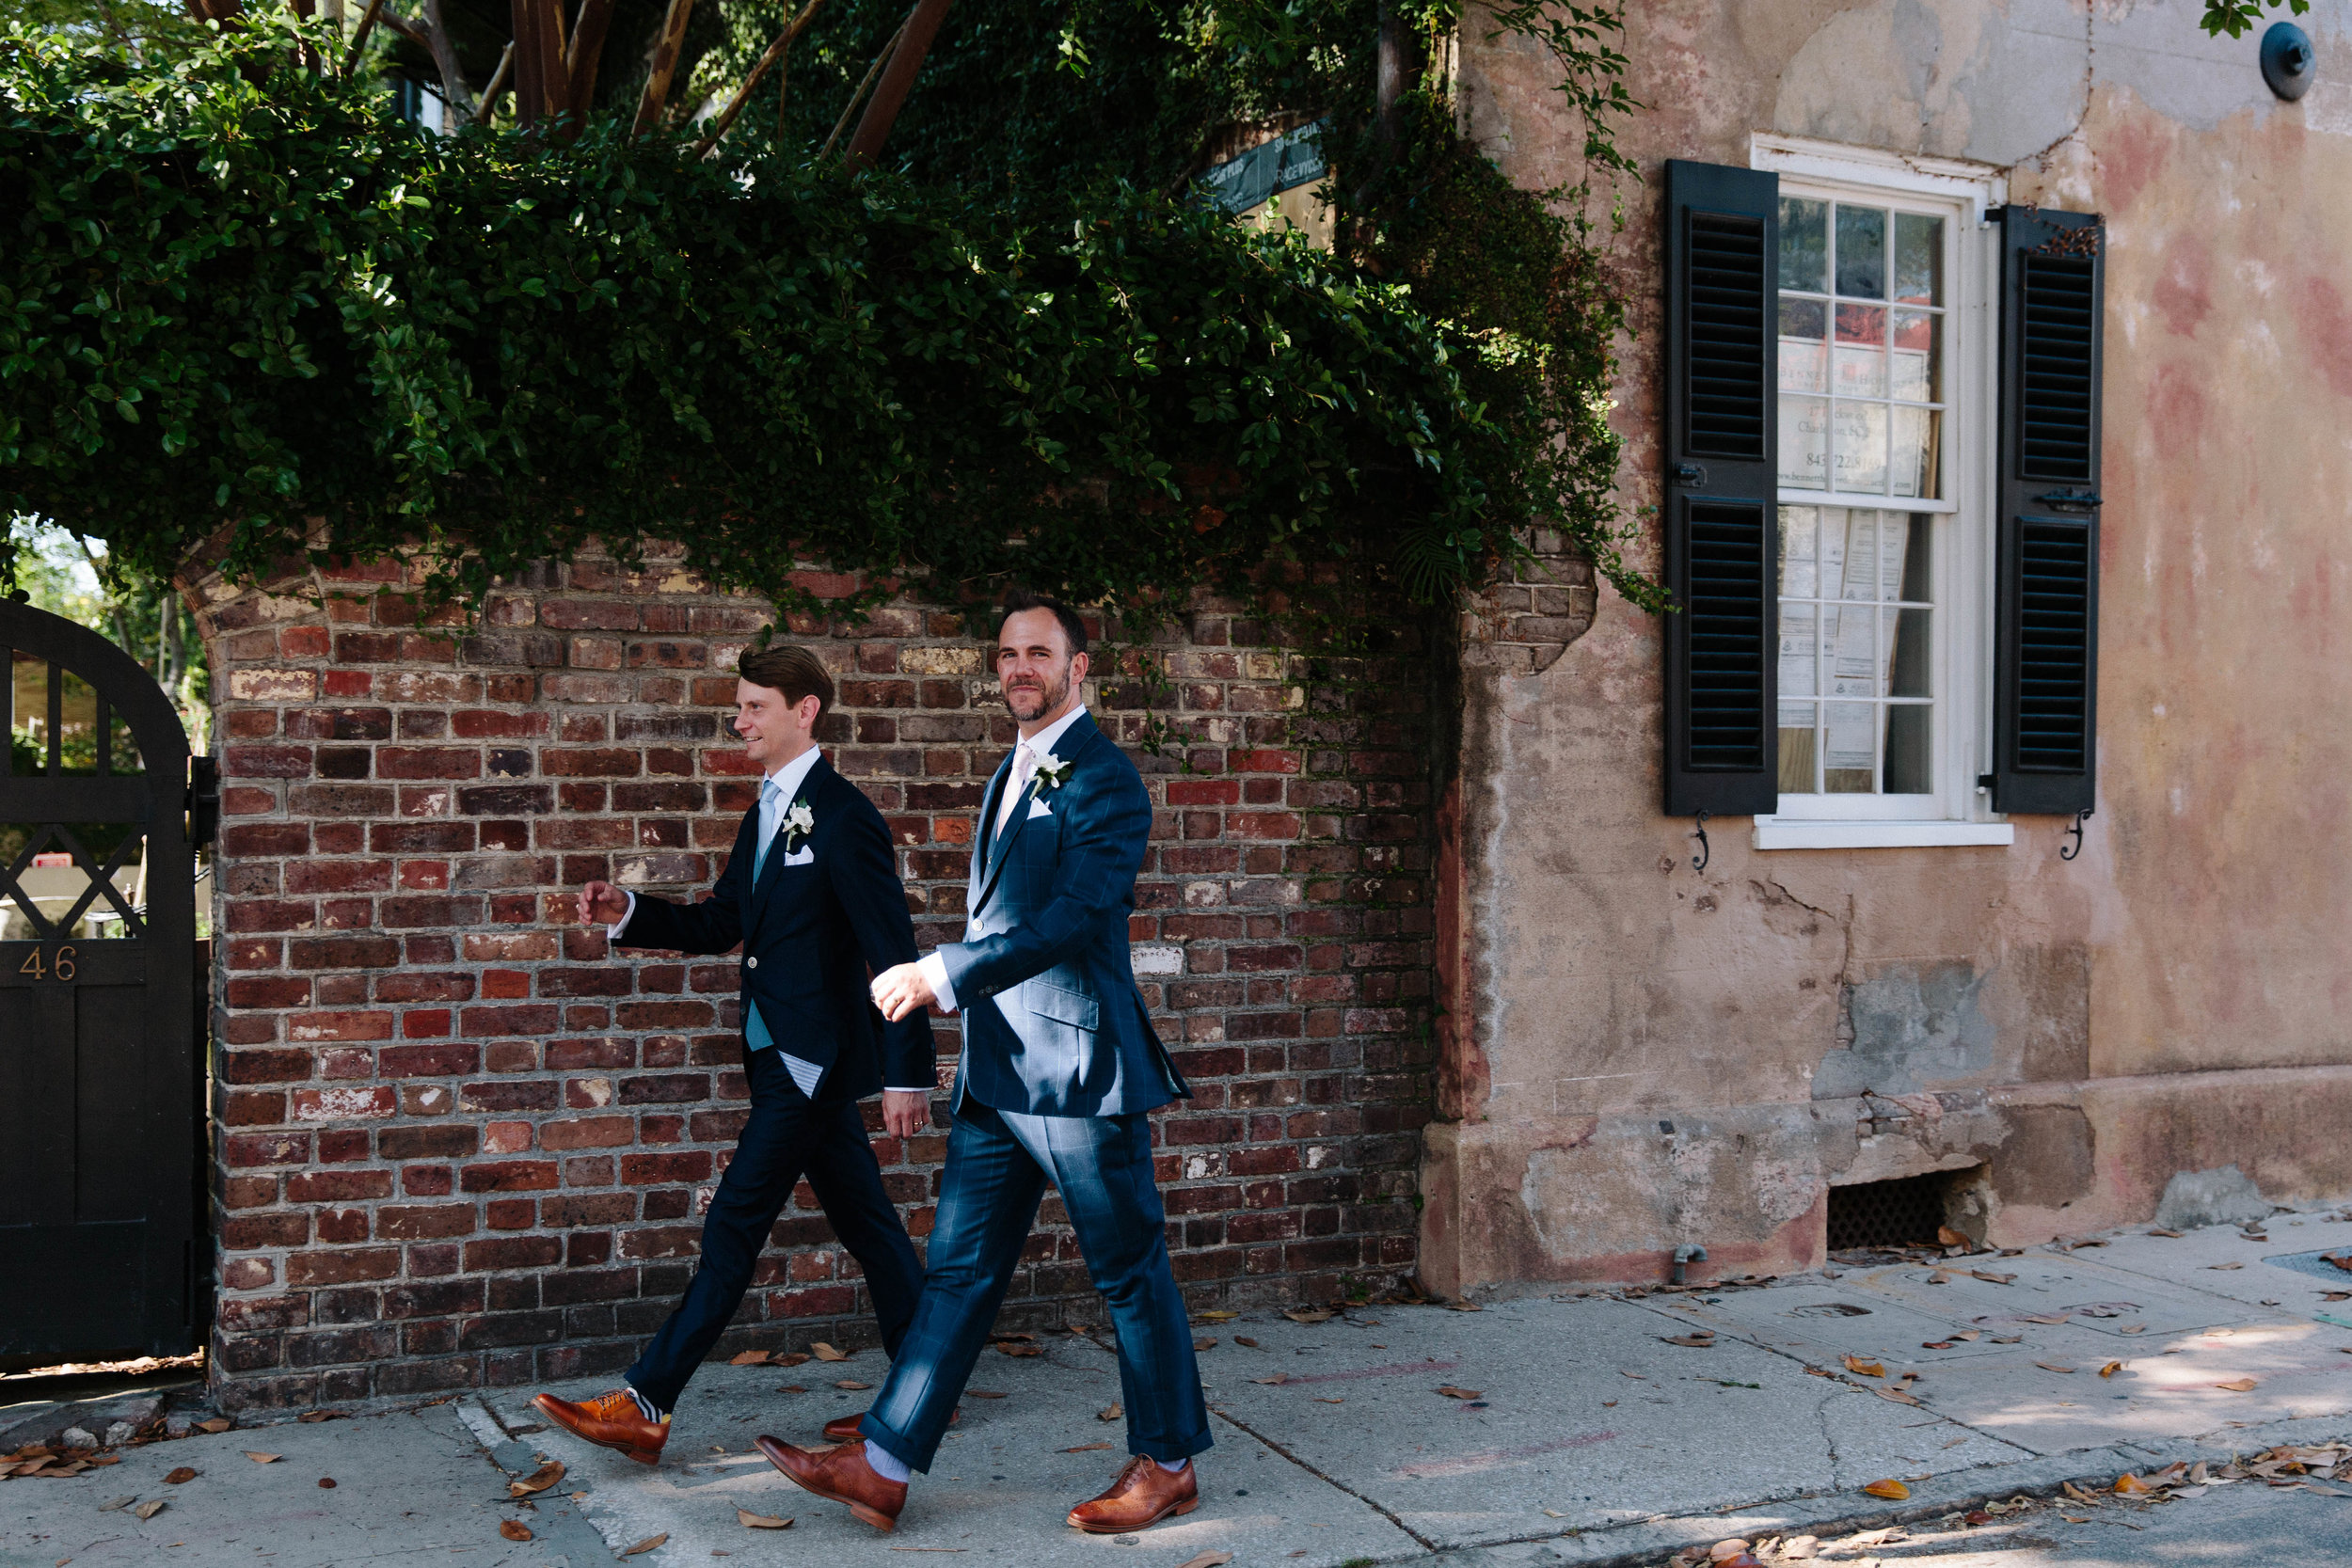 Cator & Paul Sweet southern wedding in Mrs. Whaley's Garden - Charleston, SC